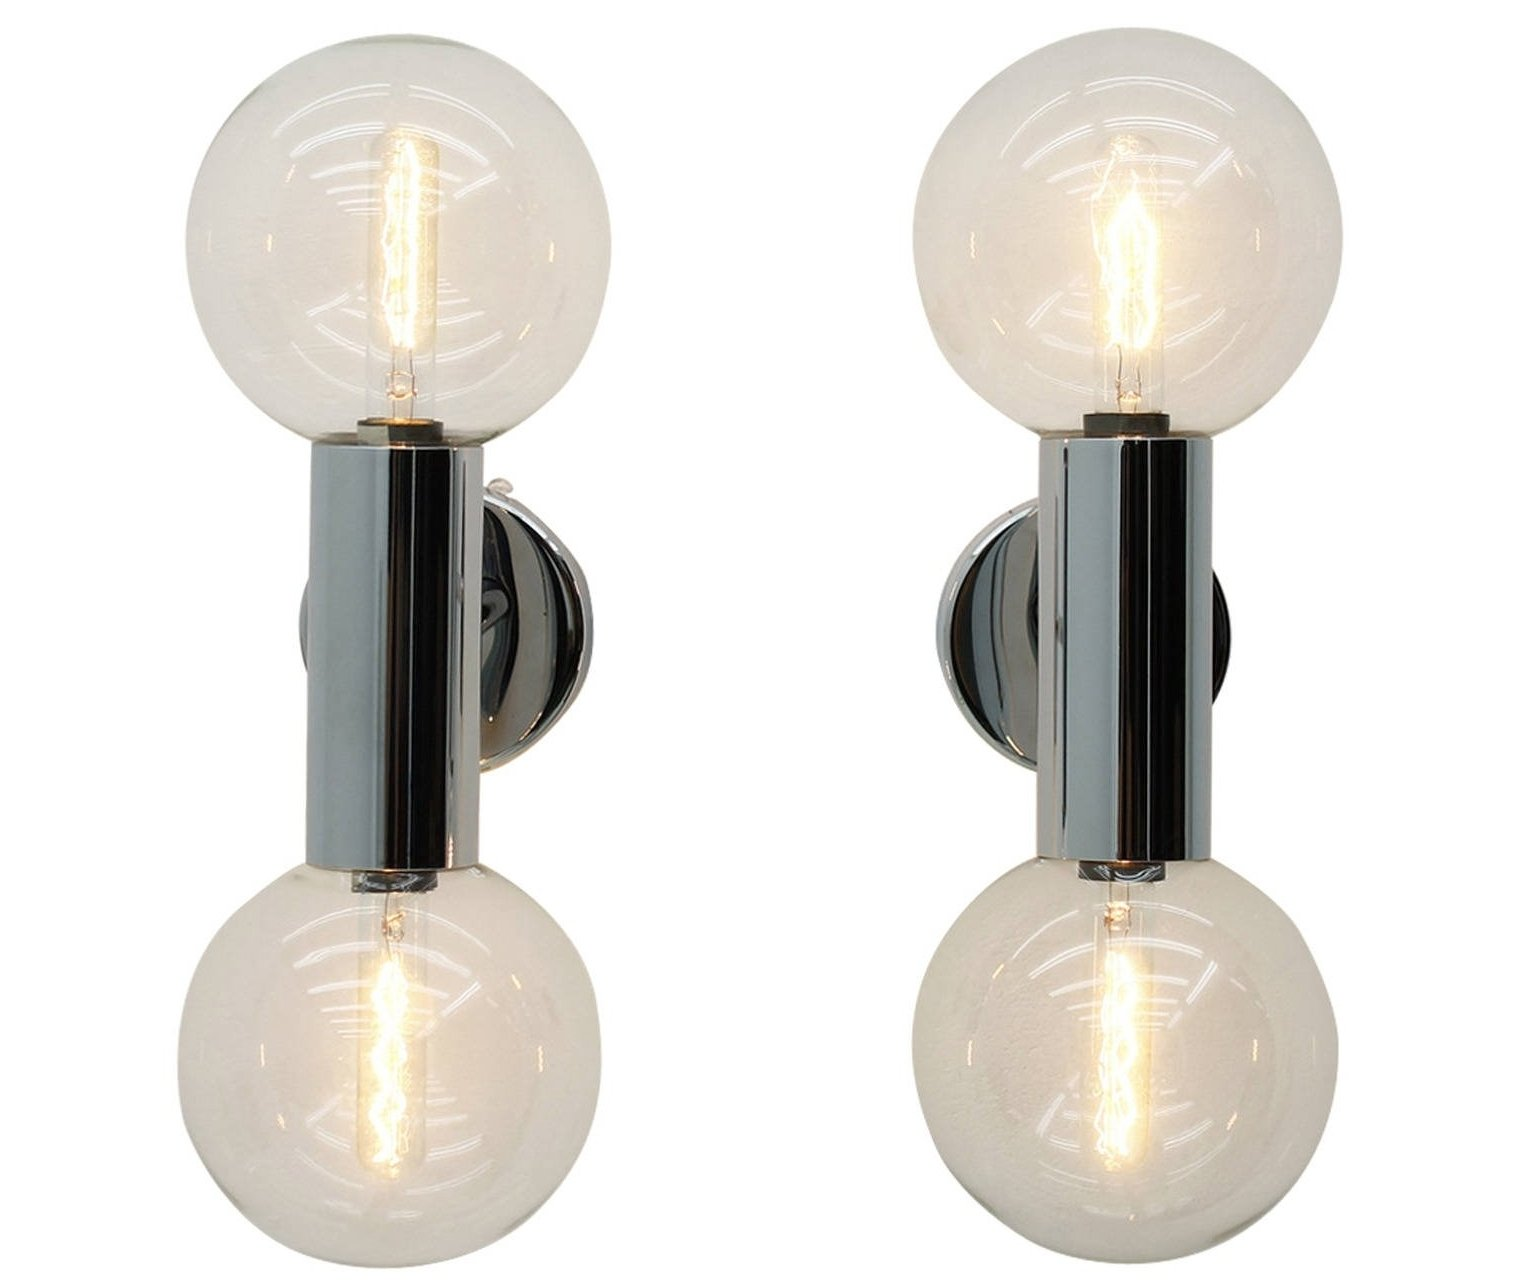 Wall Lamp Set Sri Lanka : Set of 2 wall lamps from the seventies by Motoko Ishii for Staff #64449